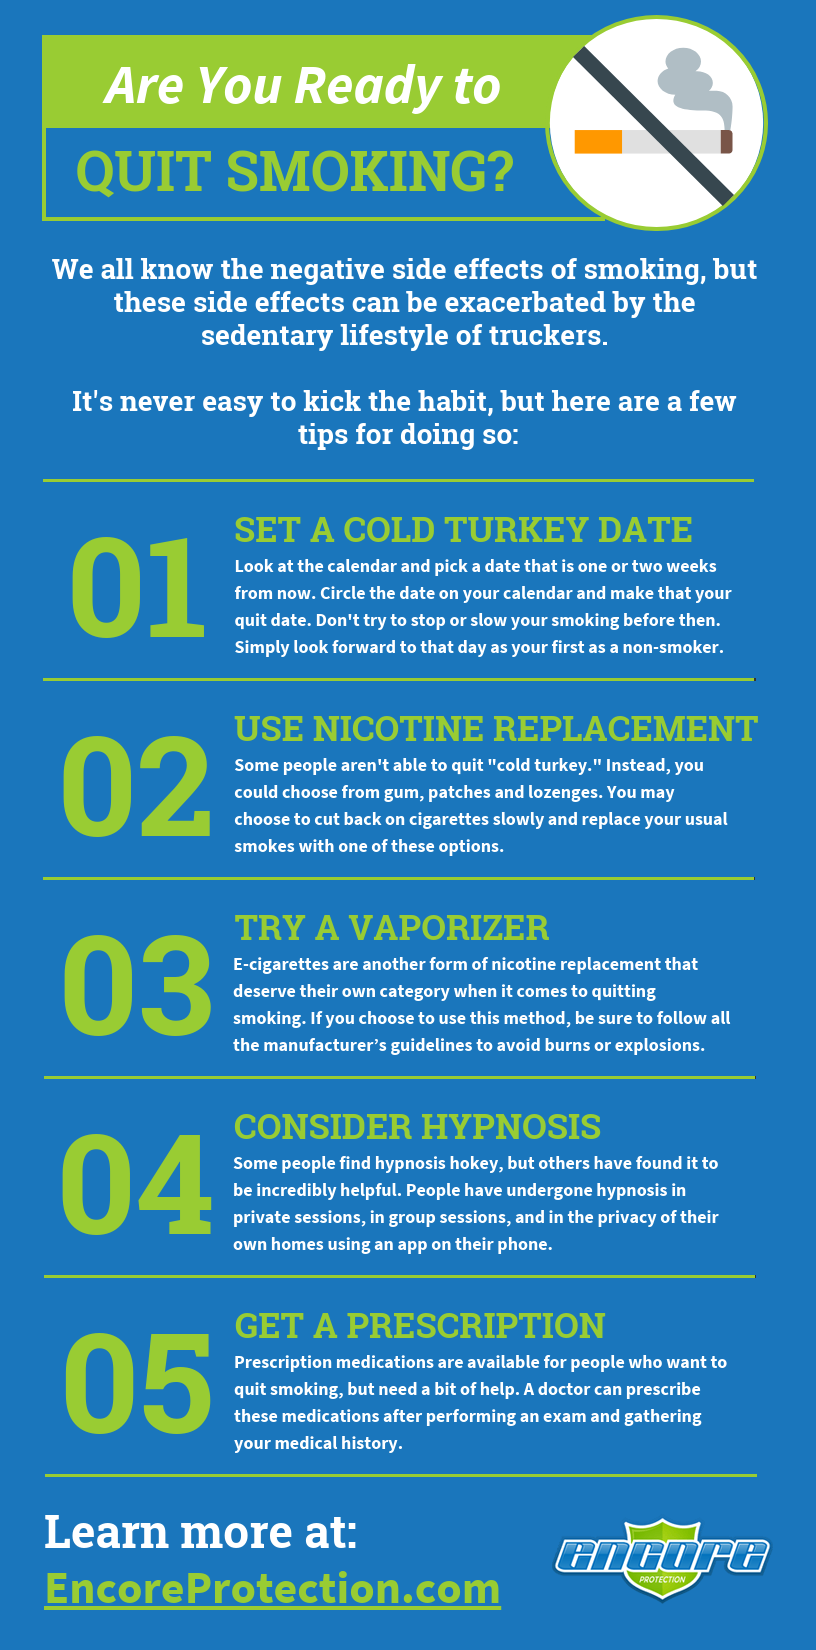 Are you ready to quit smoking infographic